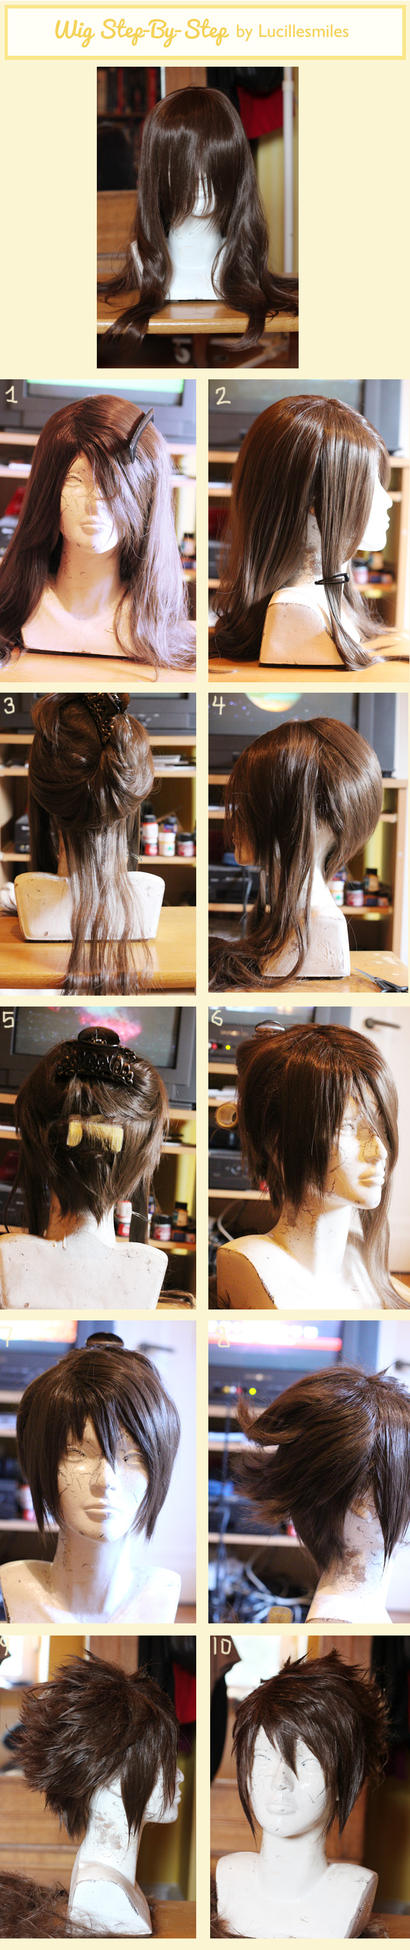 Step-by-step wig tutorial by LucilleSmiles